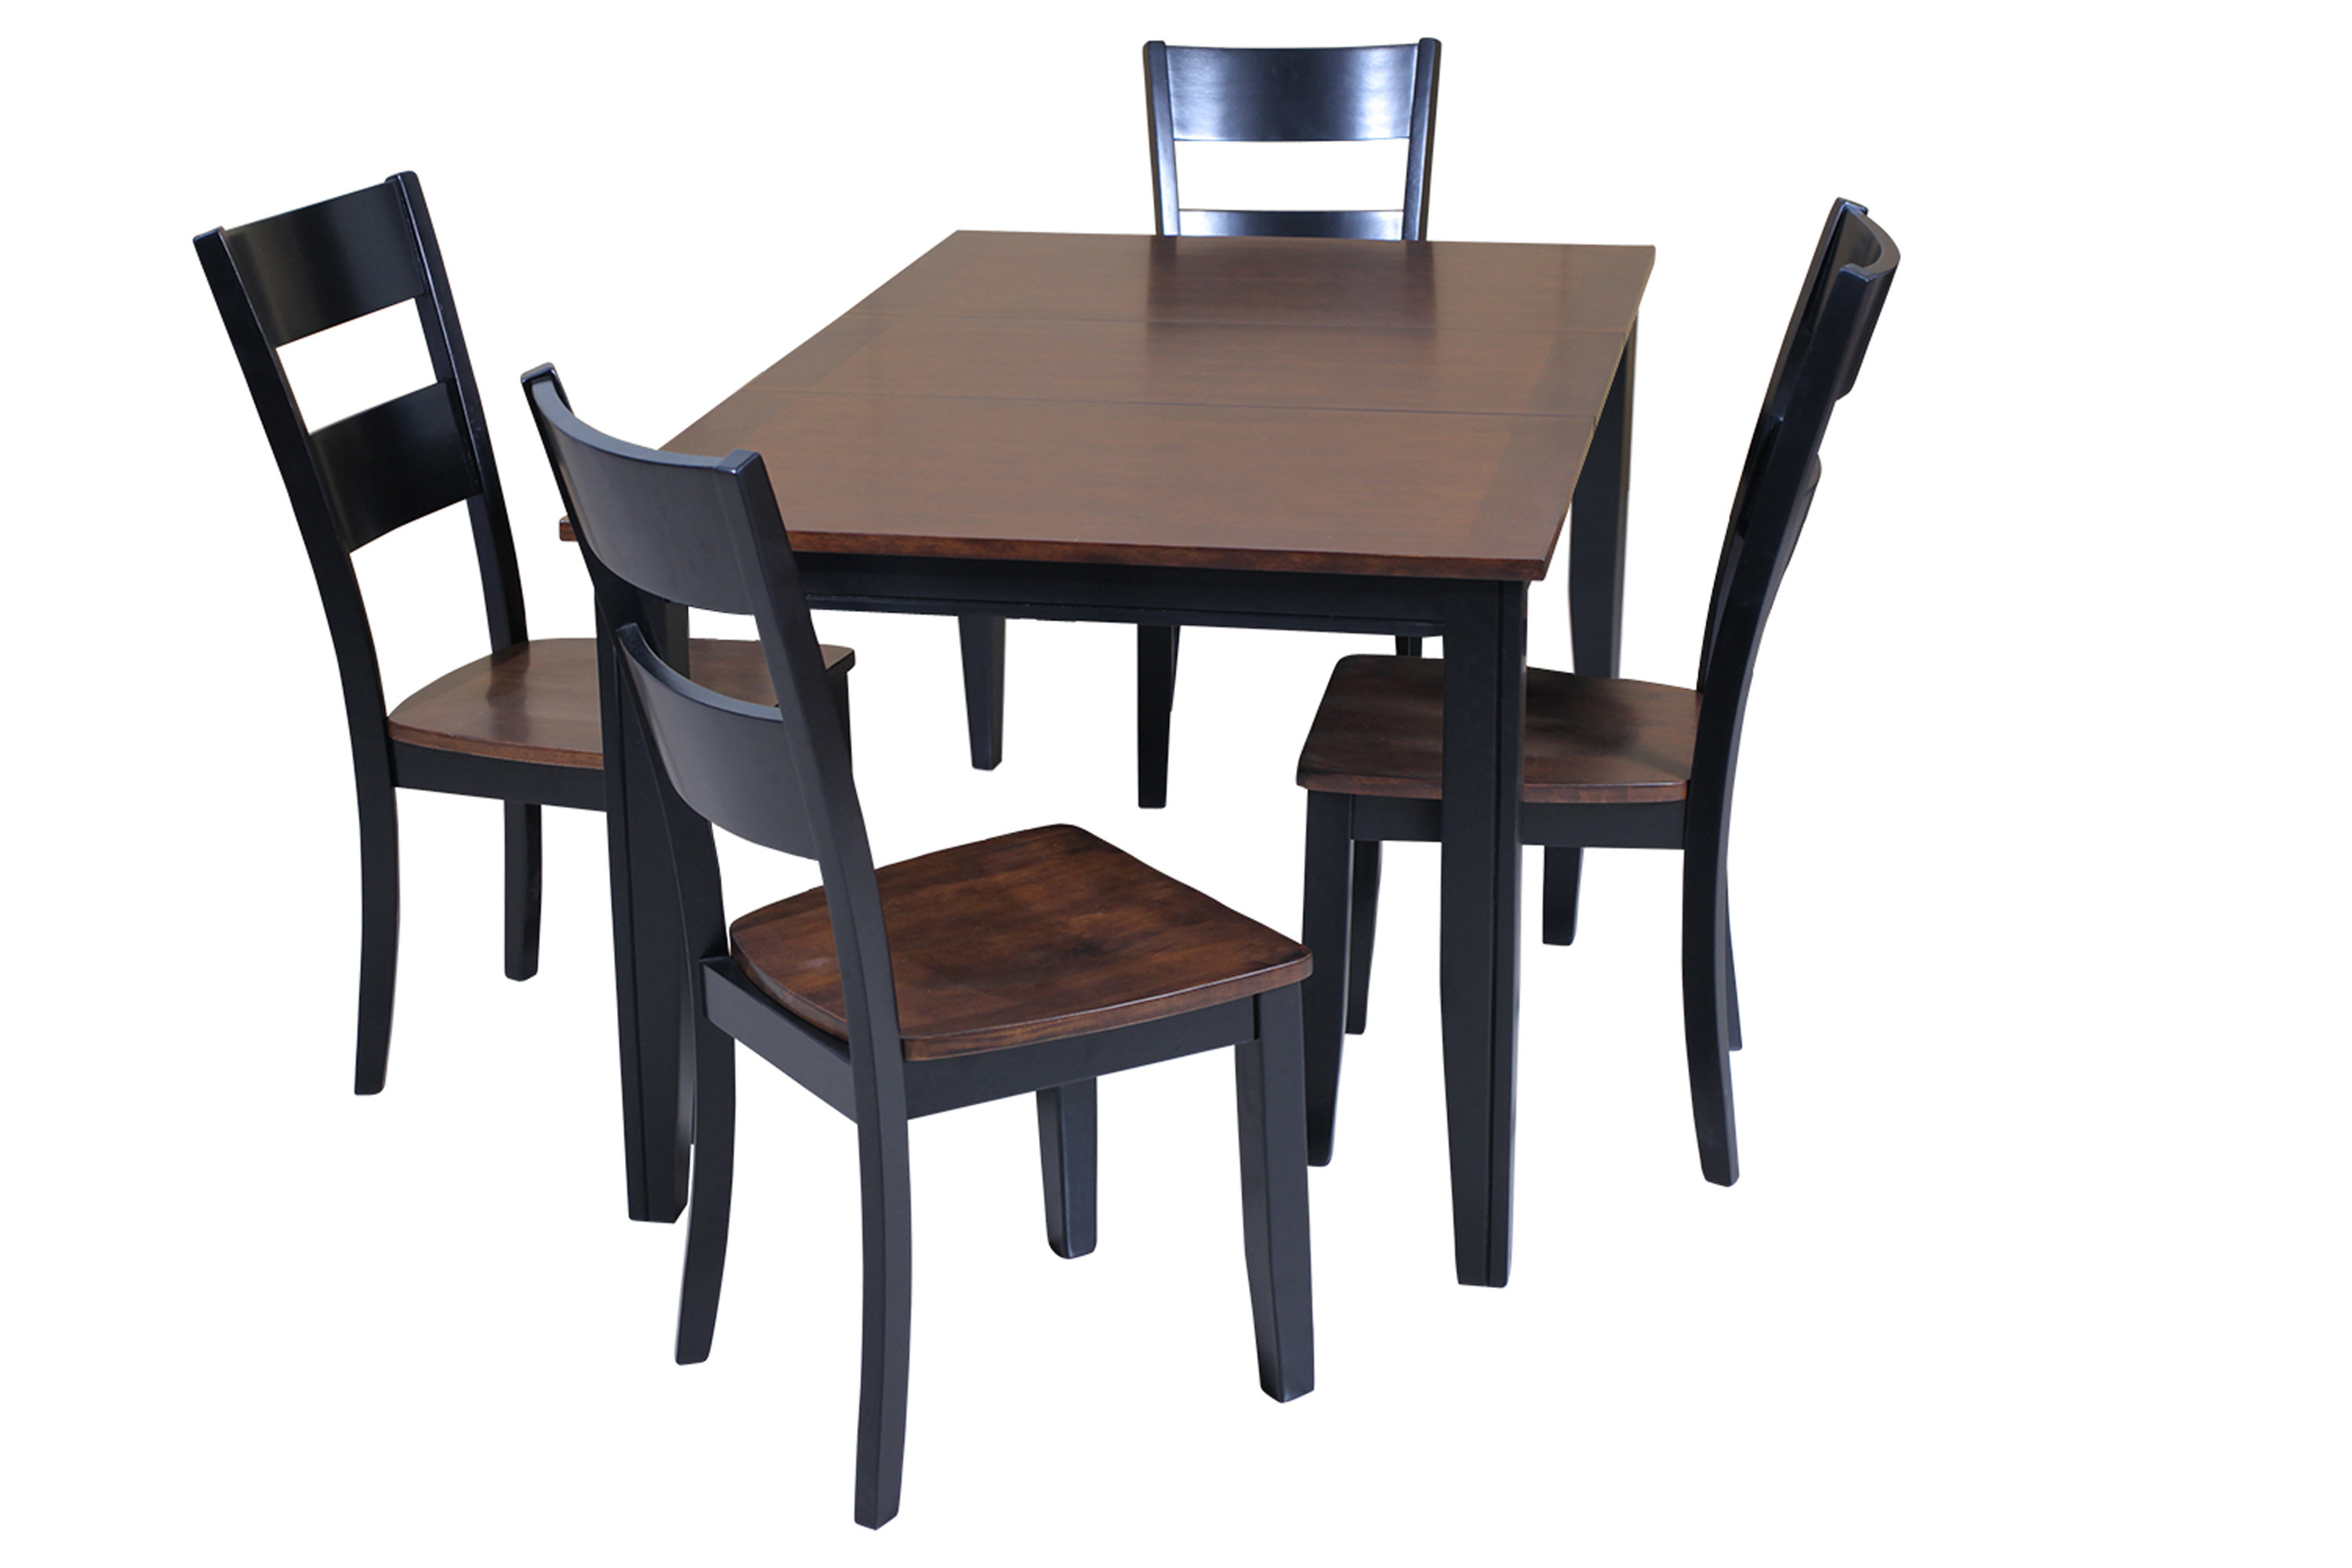 Red Barrel Studio Haan 5 Piece Solid Wood Dining Set With Butterfly Within Well Liked Adan 5 Piece Solid Wood Dining Sets (Set Of 5) (View 5 of 25)